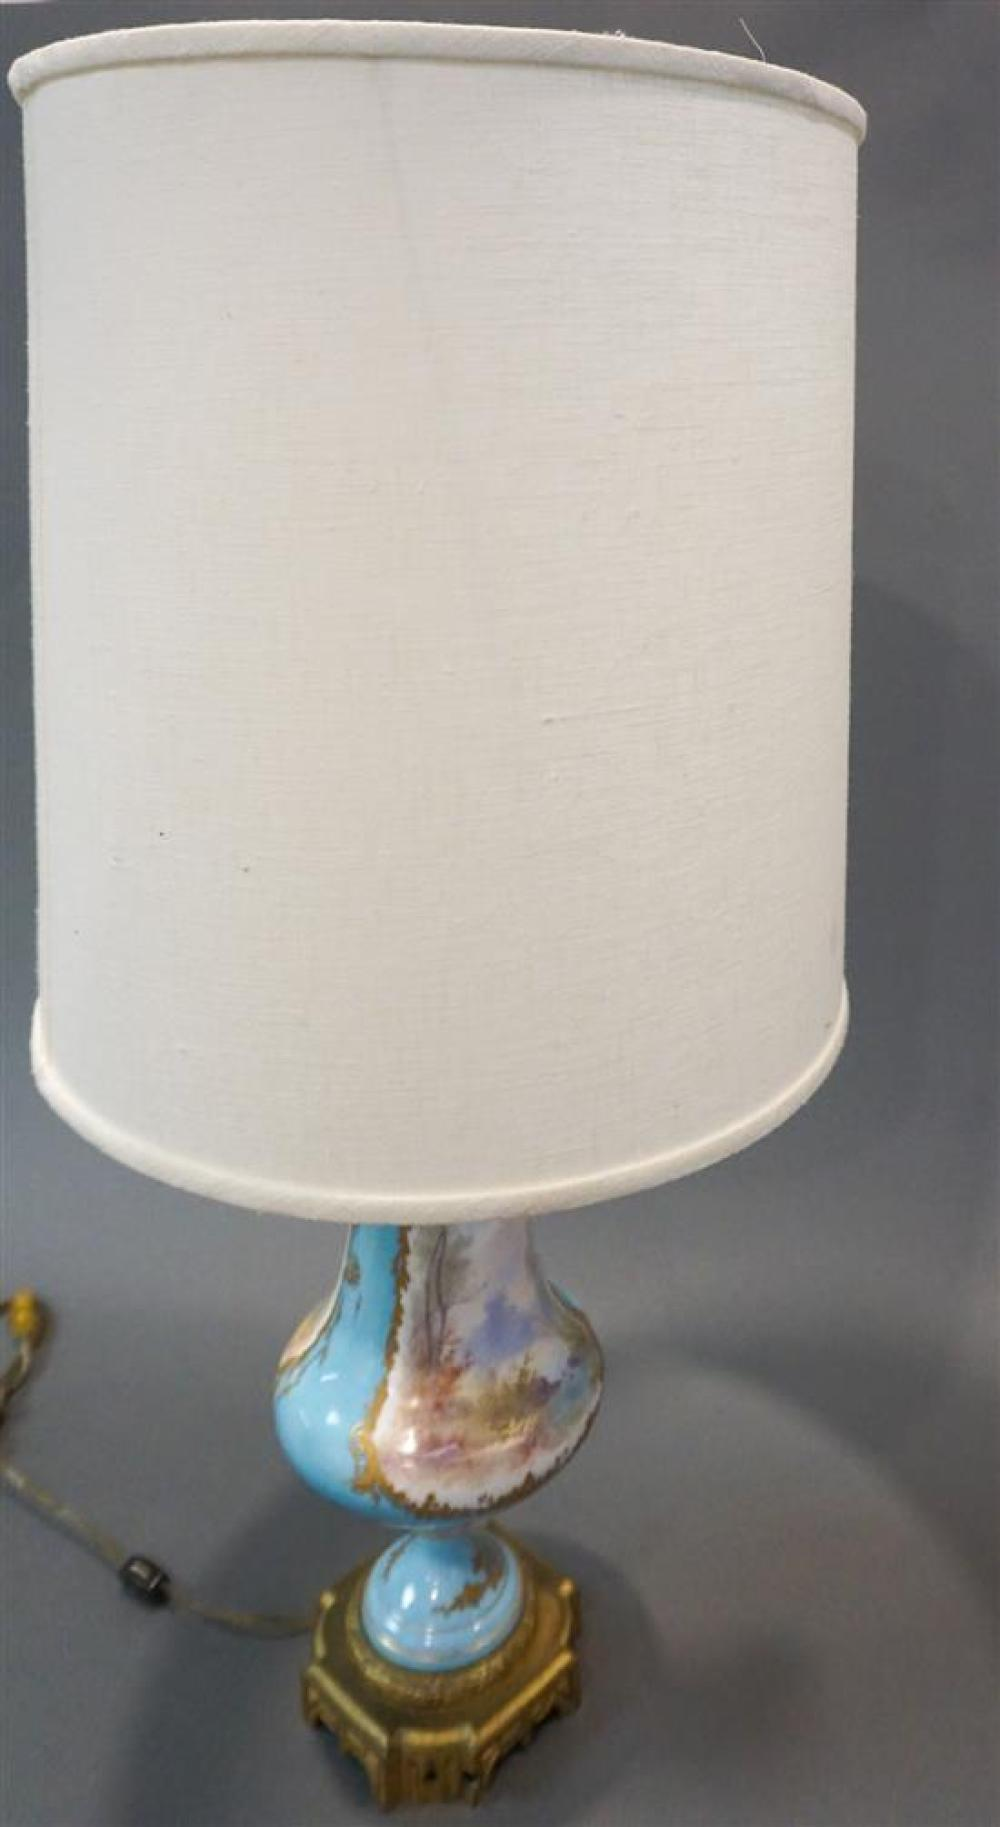 Sevres Type Blue Celeste Ground Decorated Urn mounted as Lamp, H: 32 in